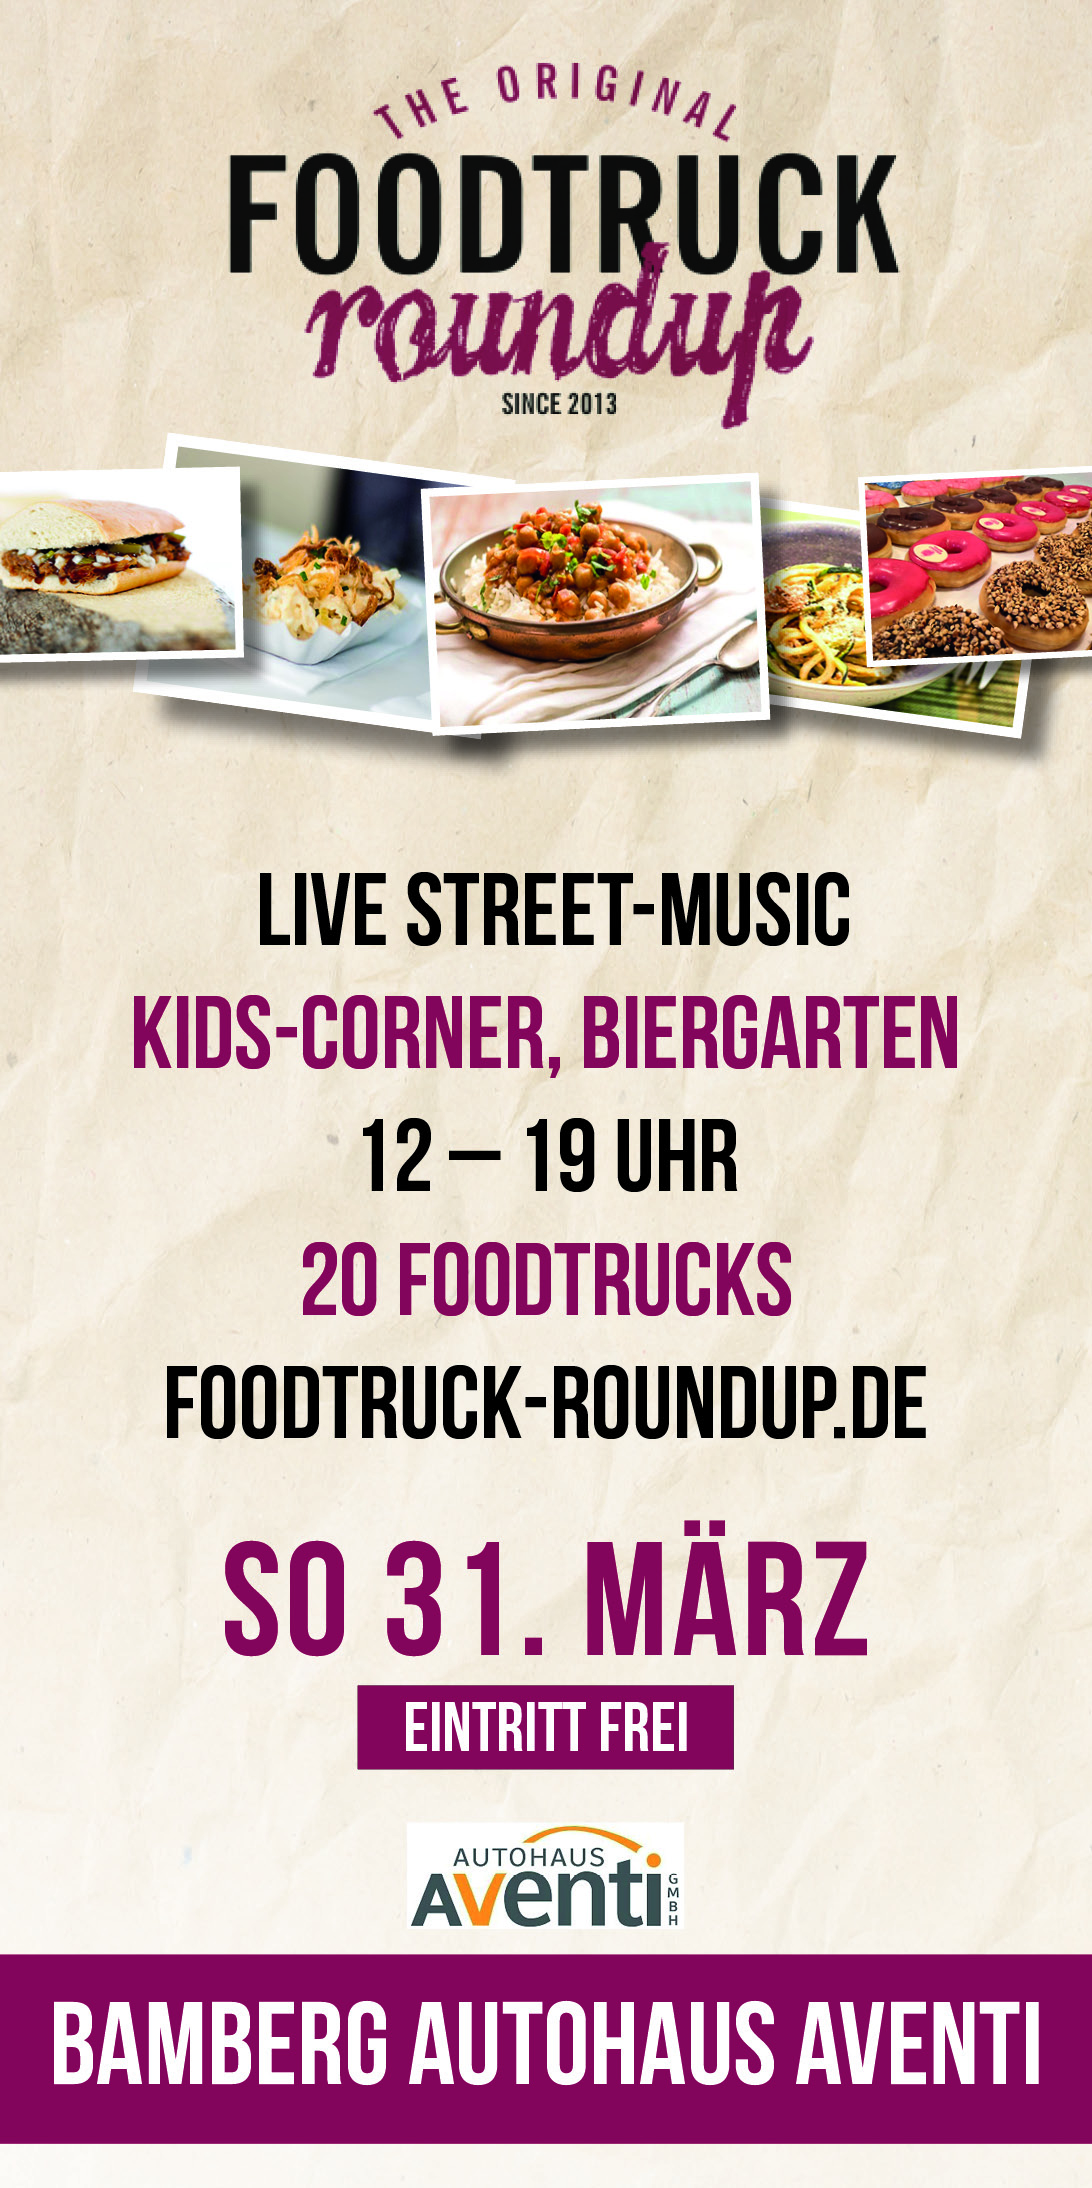 Foodtruck Roundup 2019